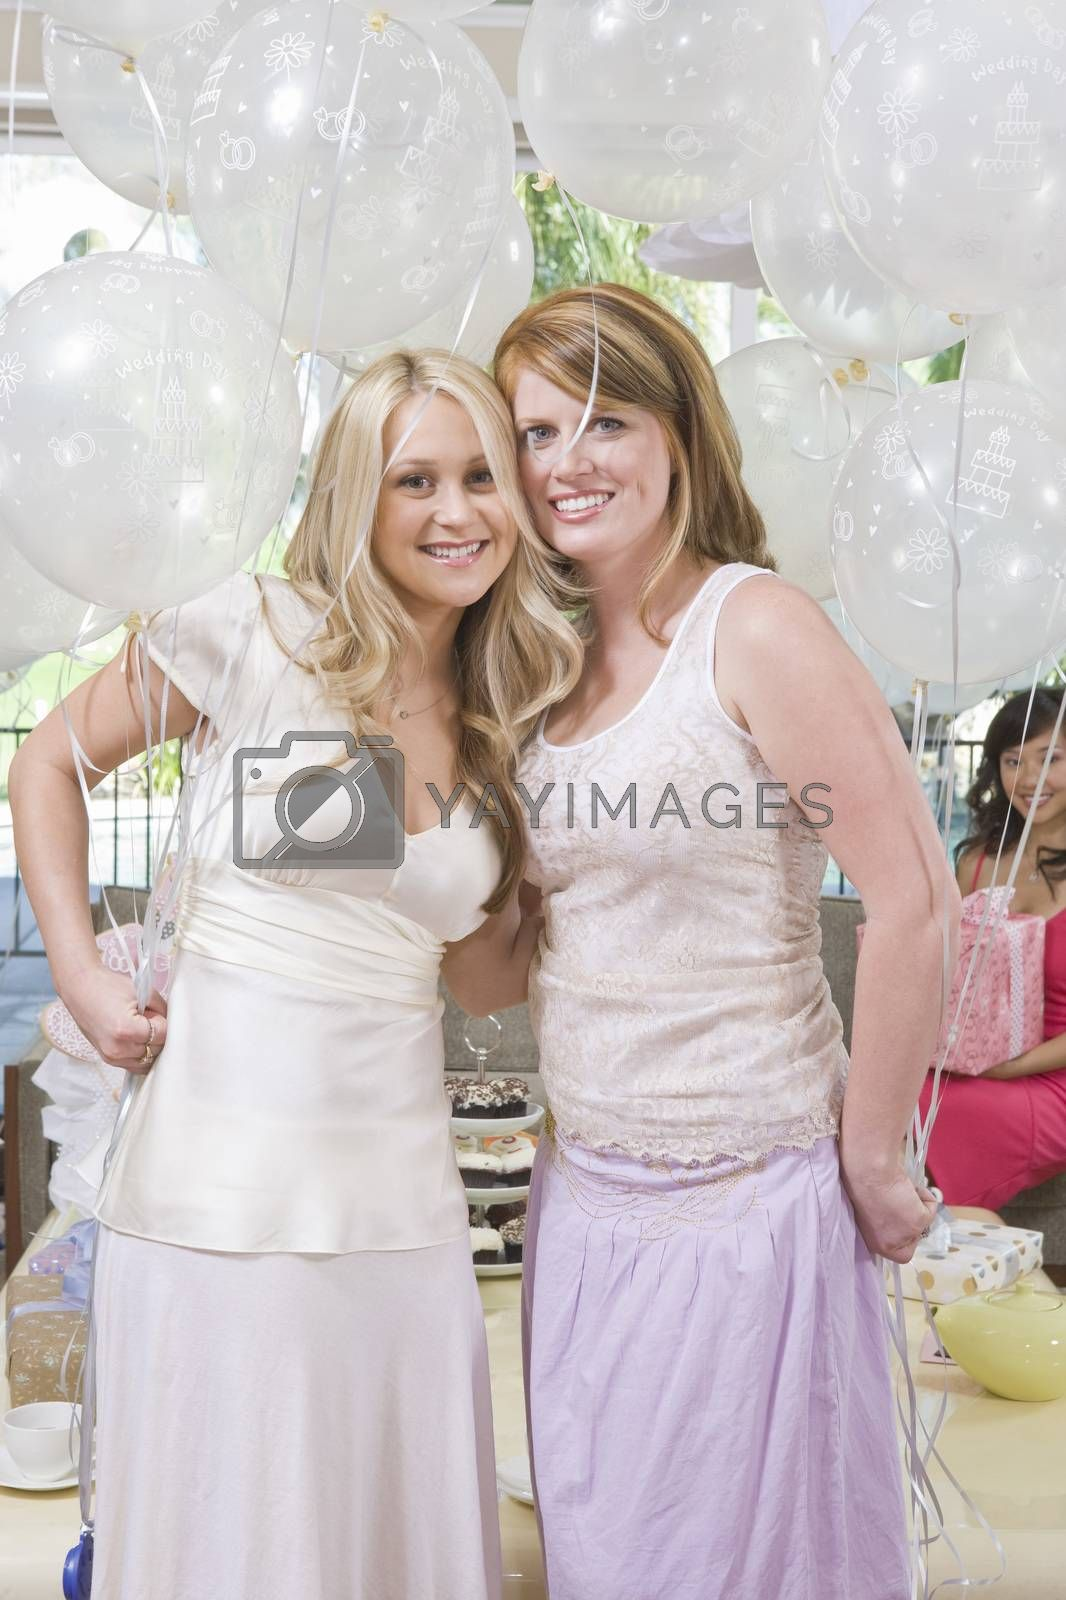 Bride And Her Friend Holding Balloons At Hen Party